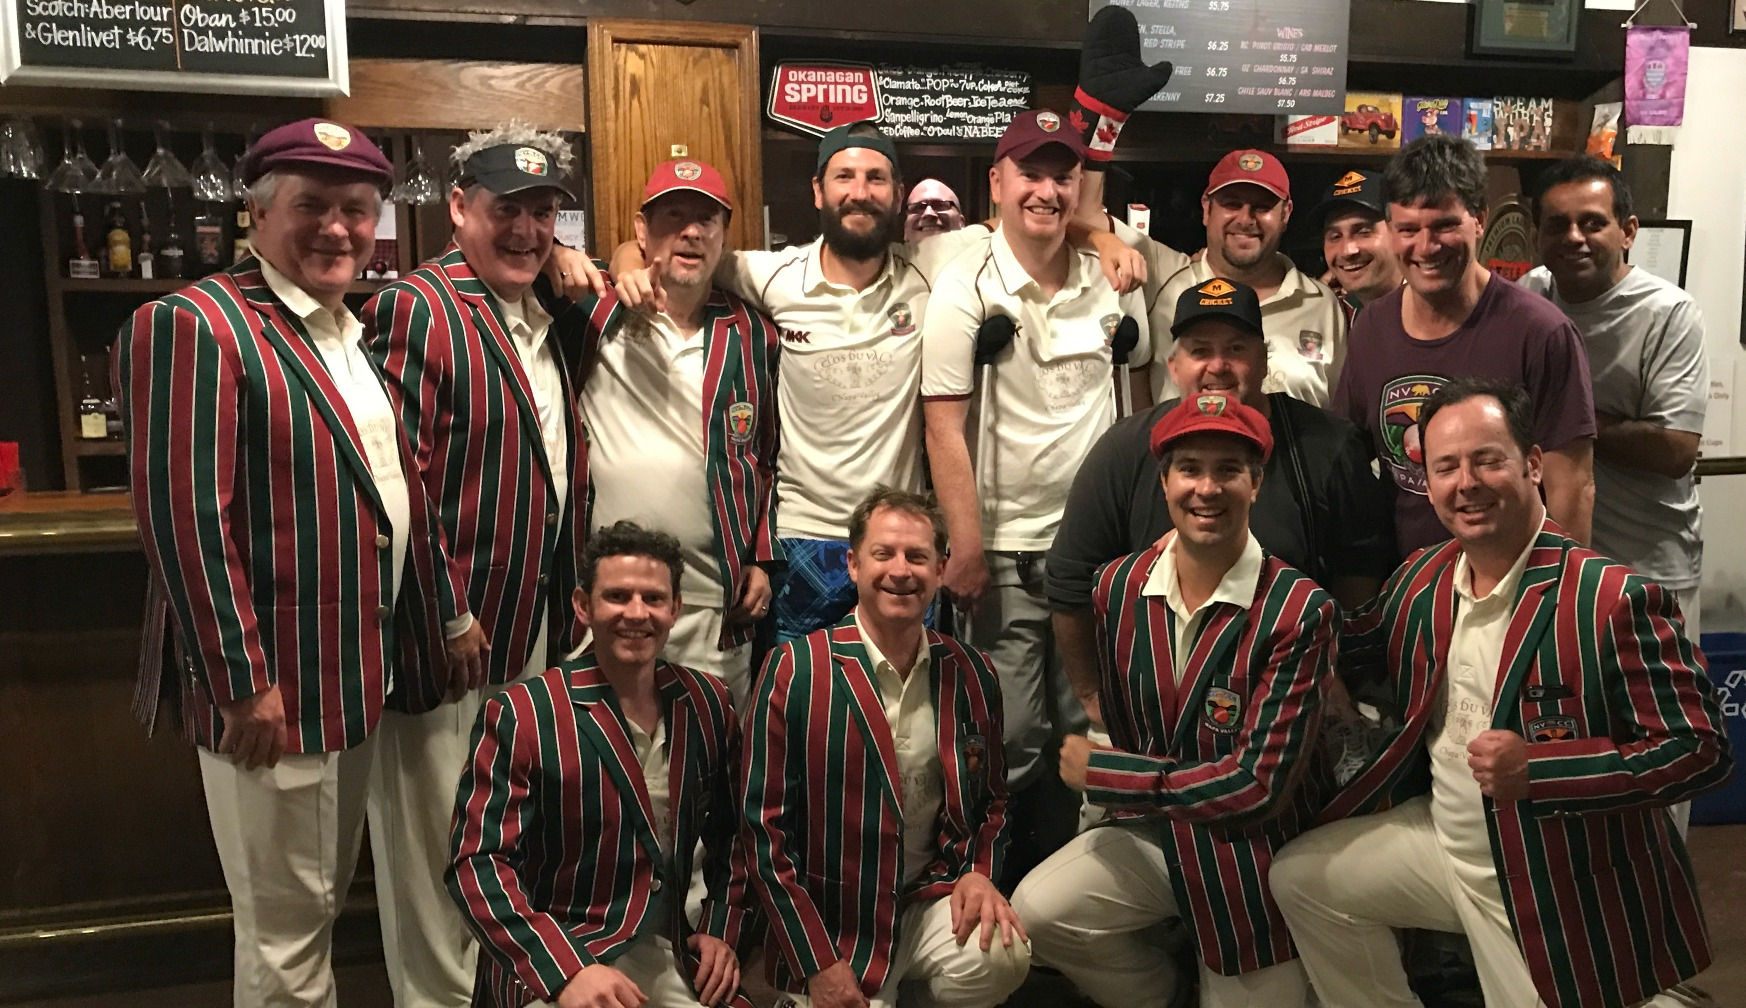 Napa Valley CC members pictured in the historic Brockton Pavilion during their recent tour to Vancouver.